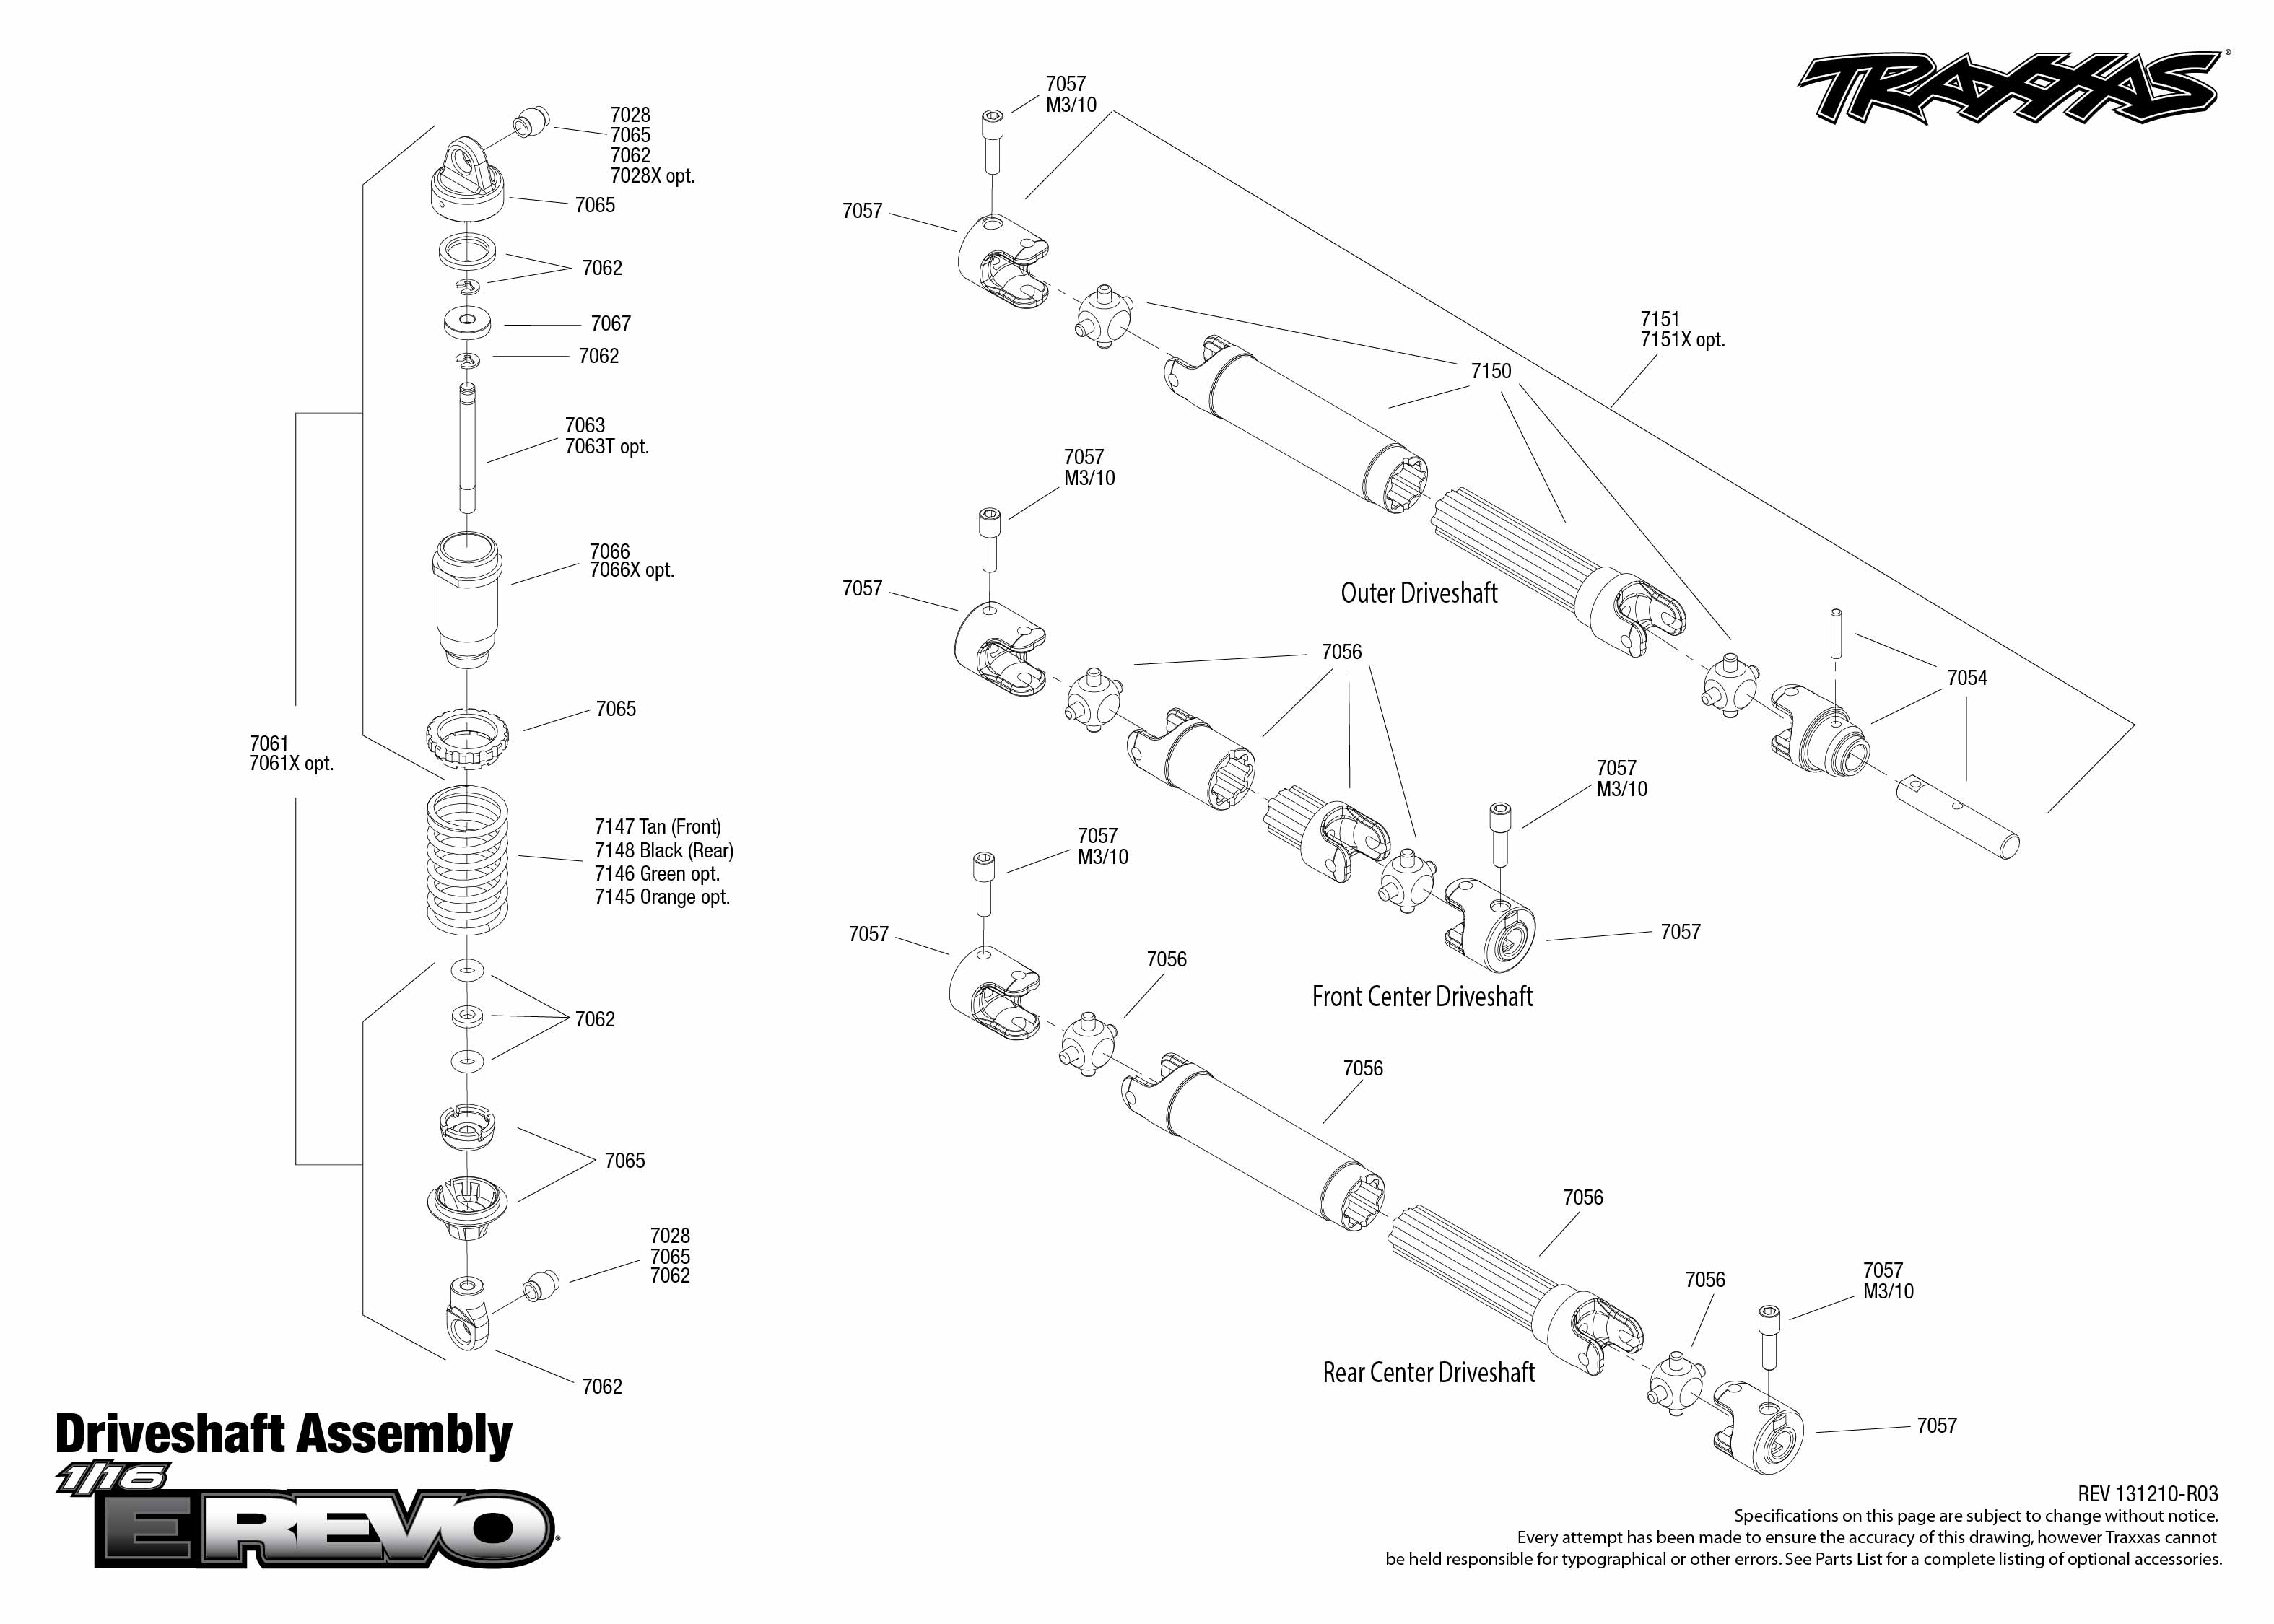 71054 Driveshafts Assembly on traxxas 1 16 e revo parts diagram